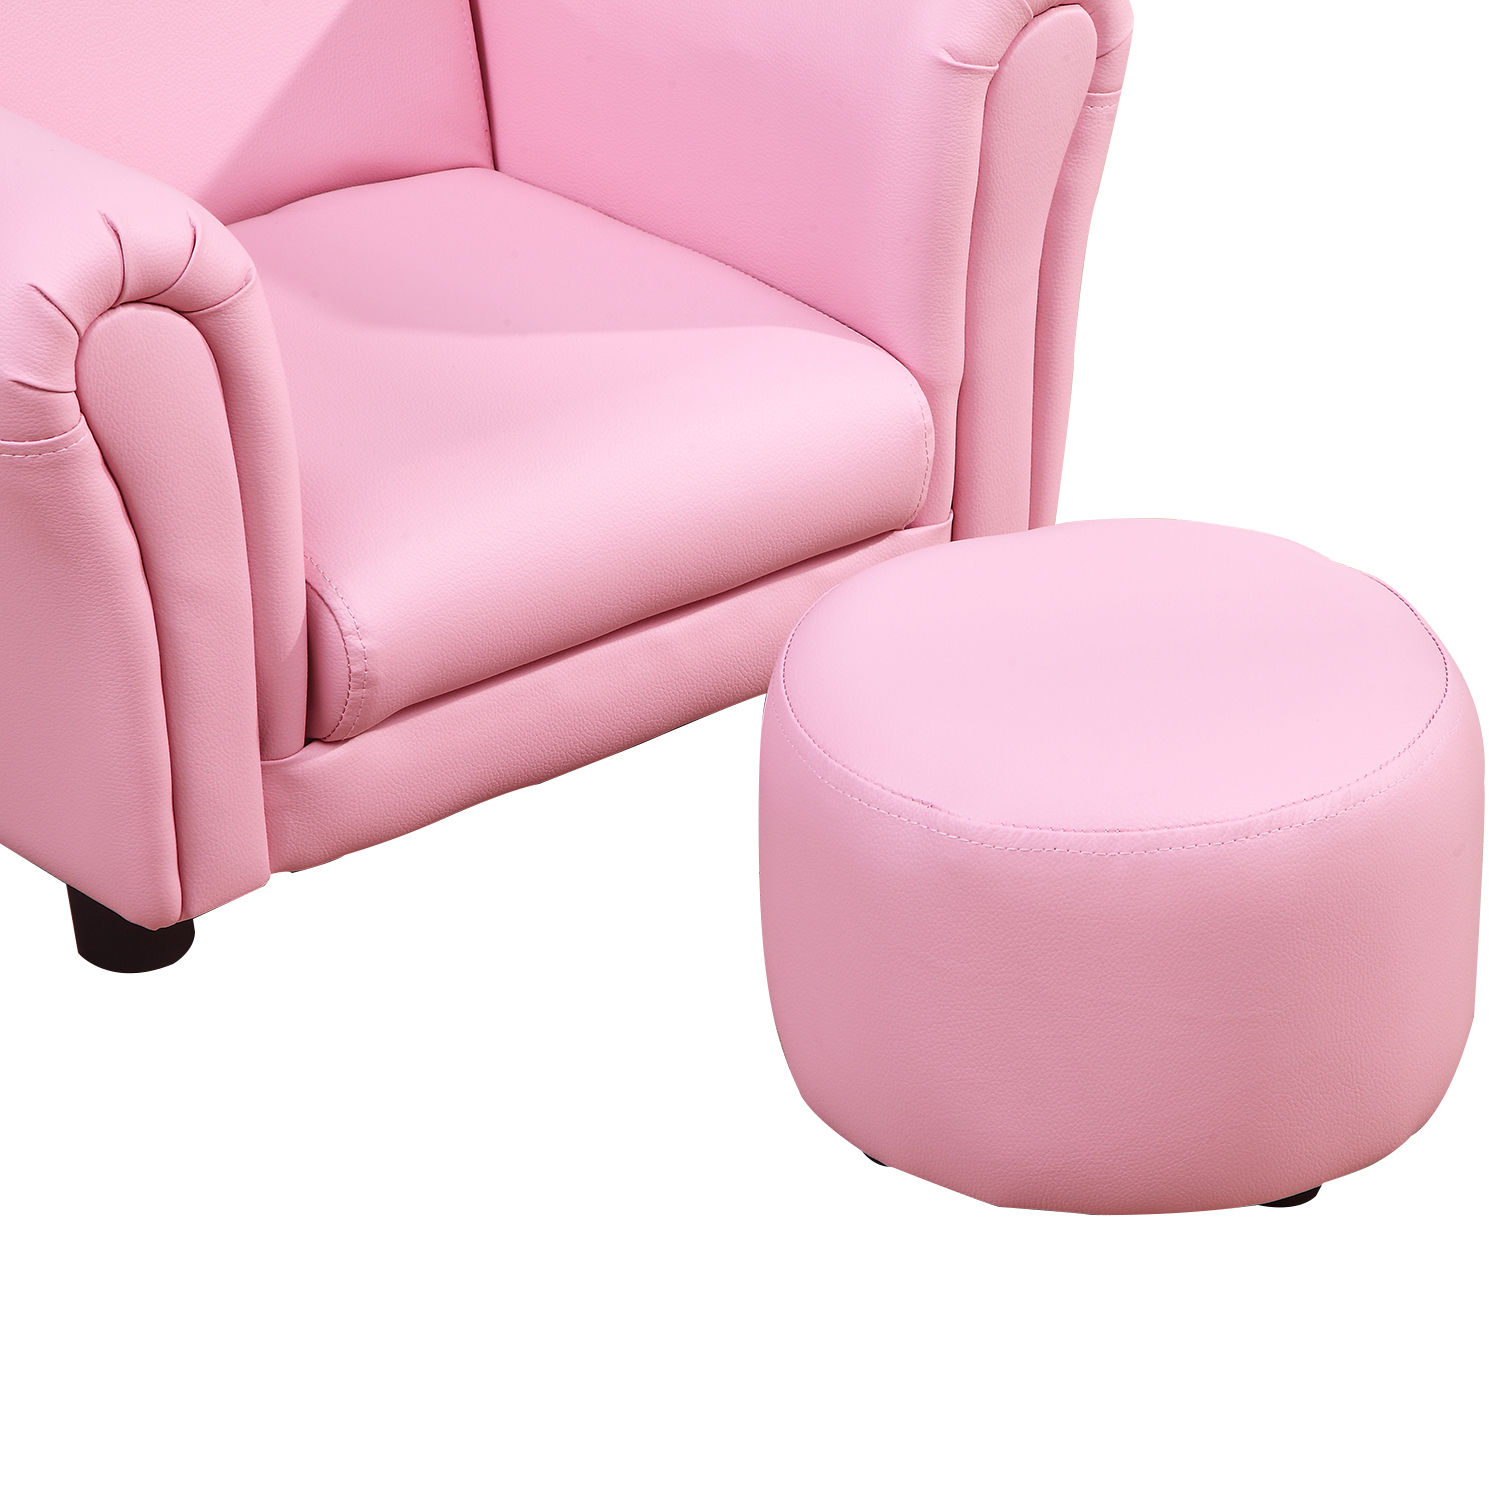 Kids-Sofa-Children-Chair-Seat-Armchair-W-Footstool-Playroom-Bedroom-Black-Pink thumbnail 17